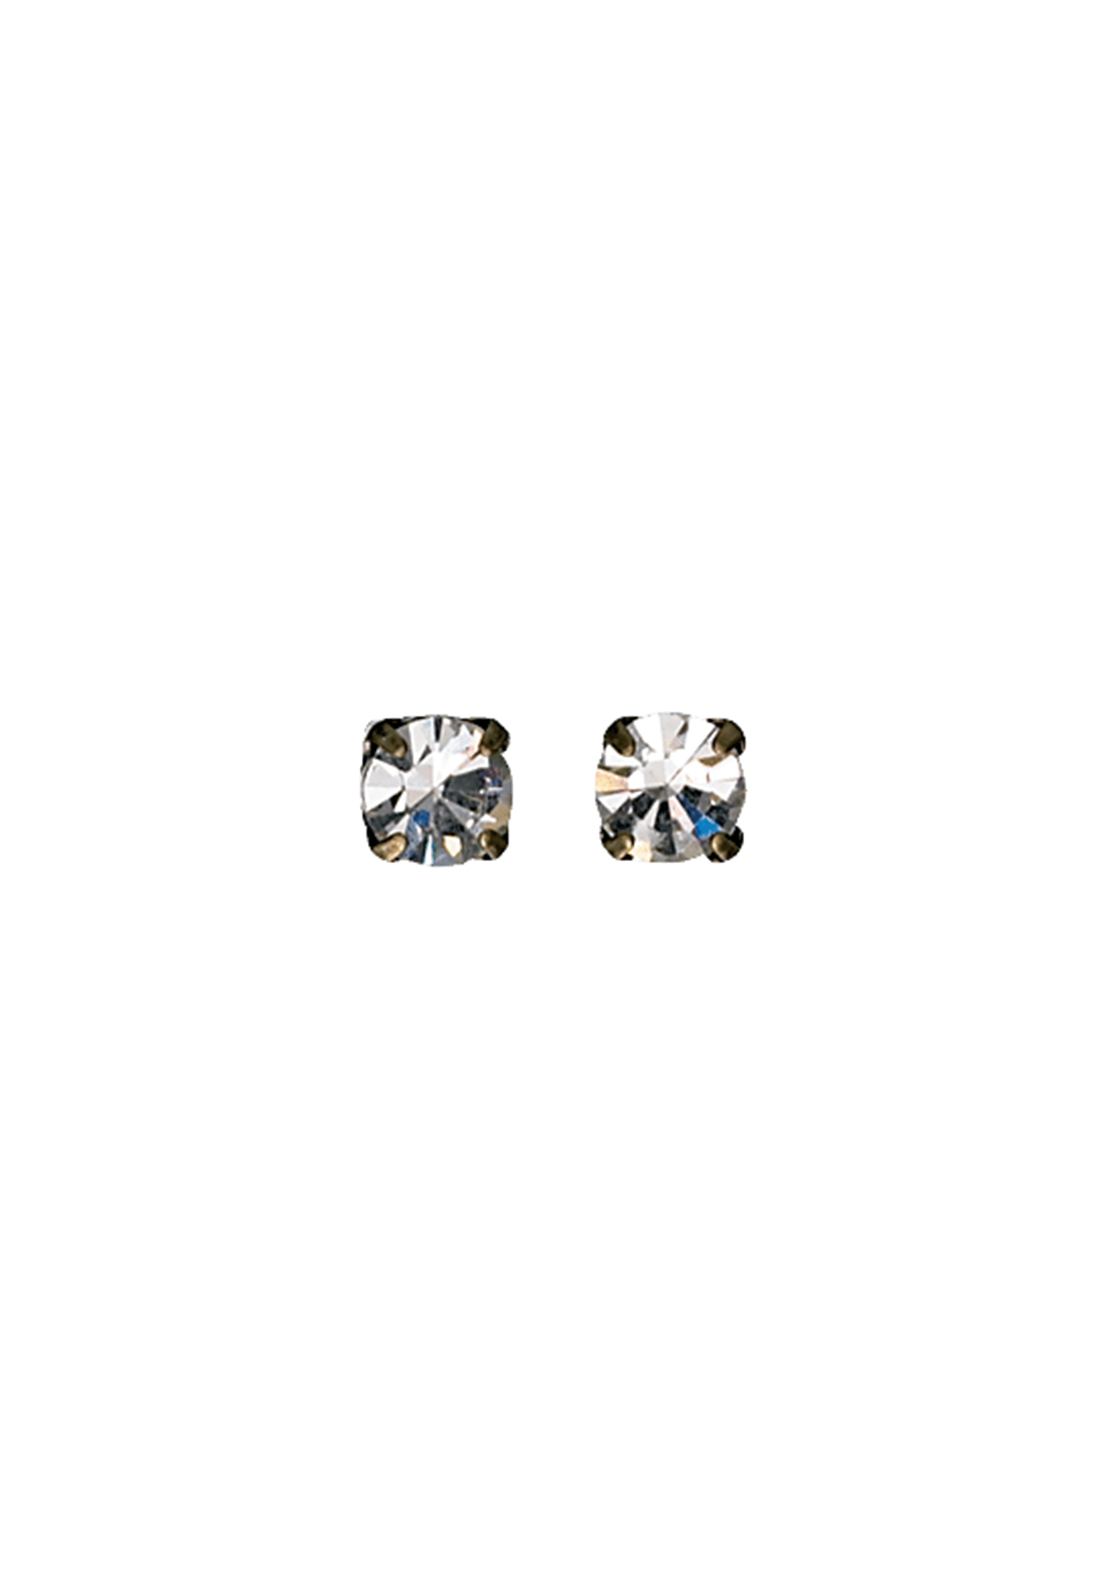 Pilgrim Women's Classic Crystal Stud Earrings, Gold